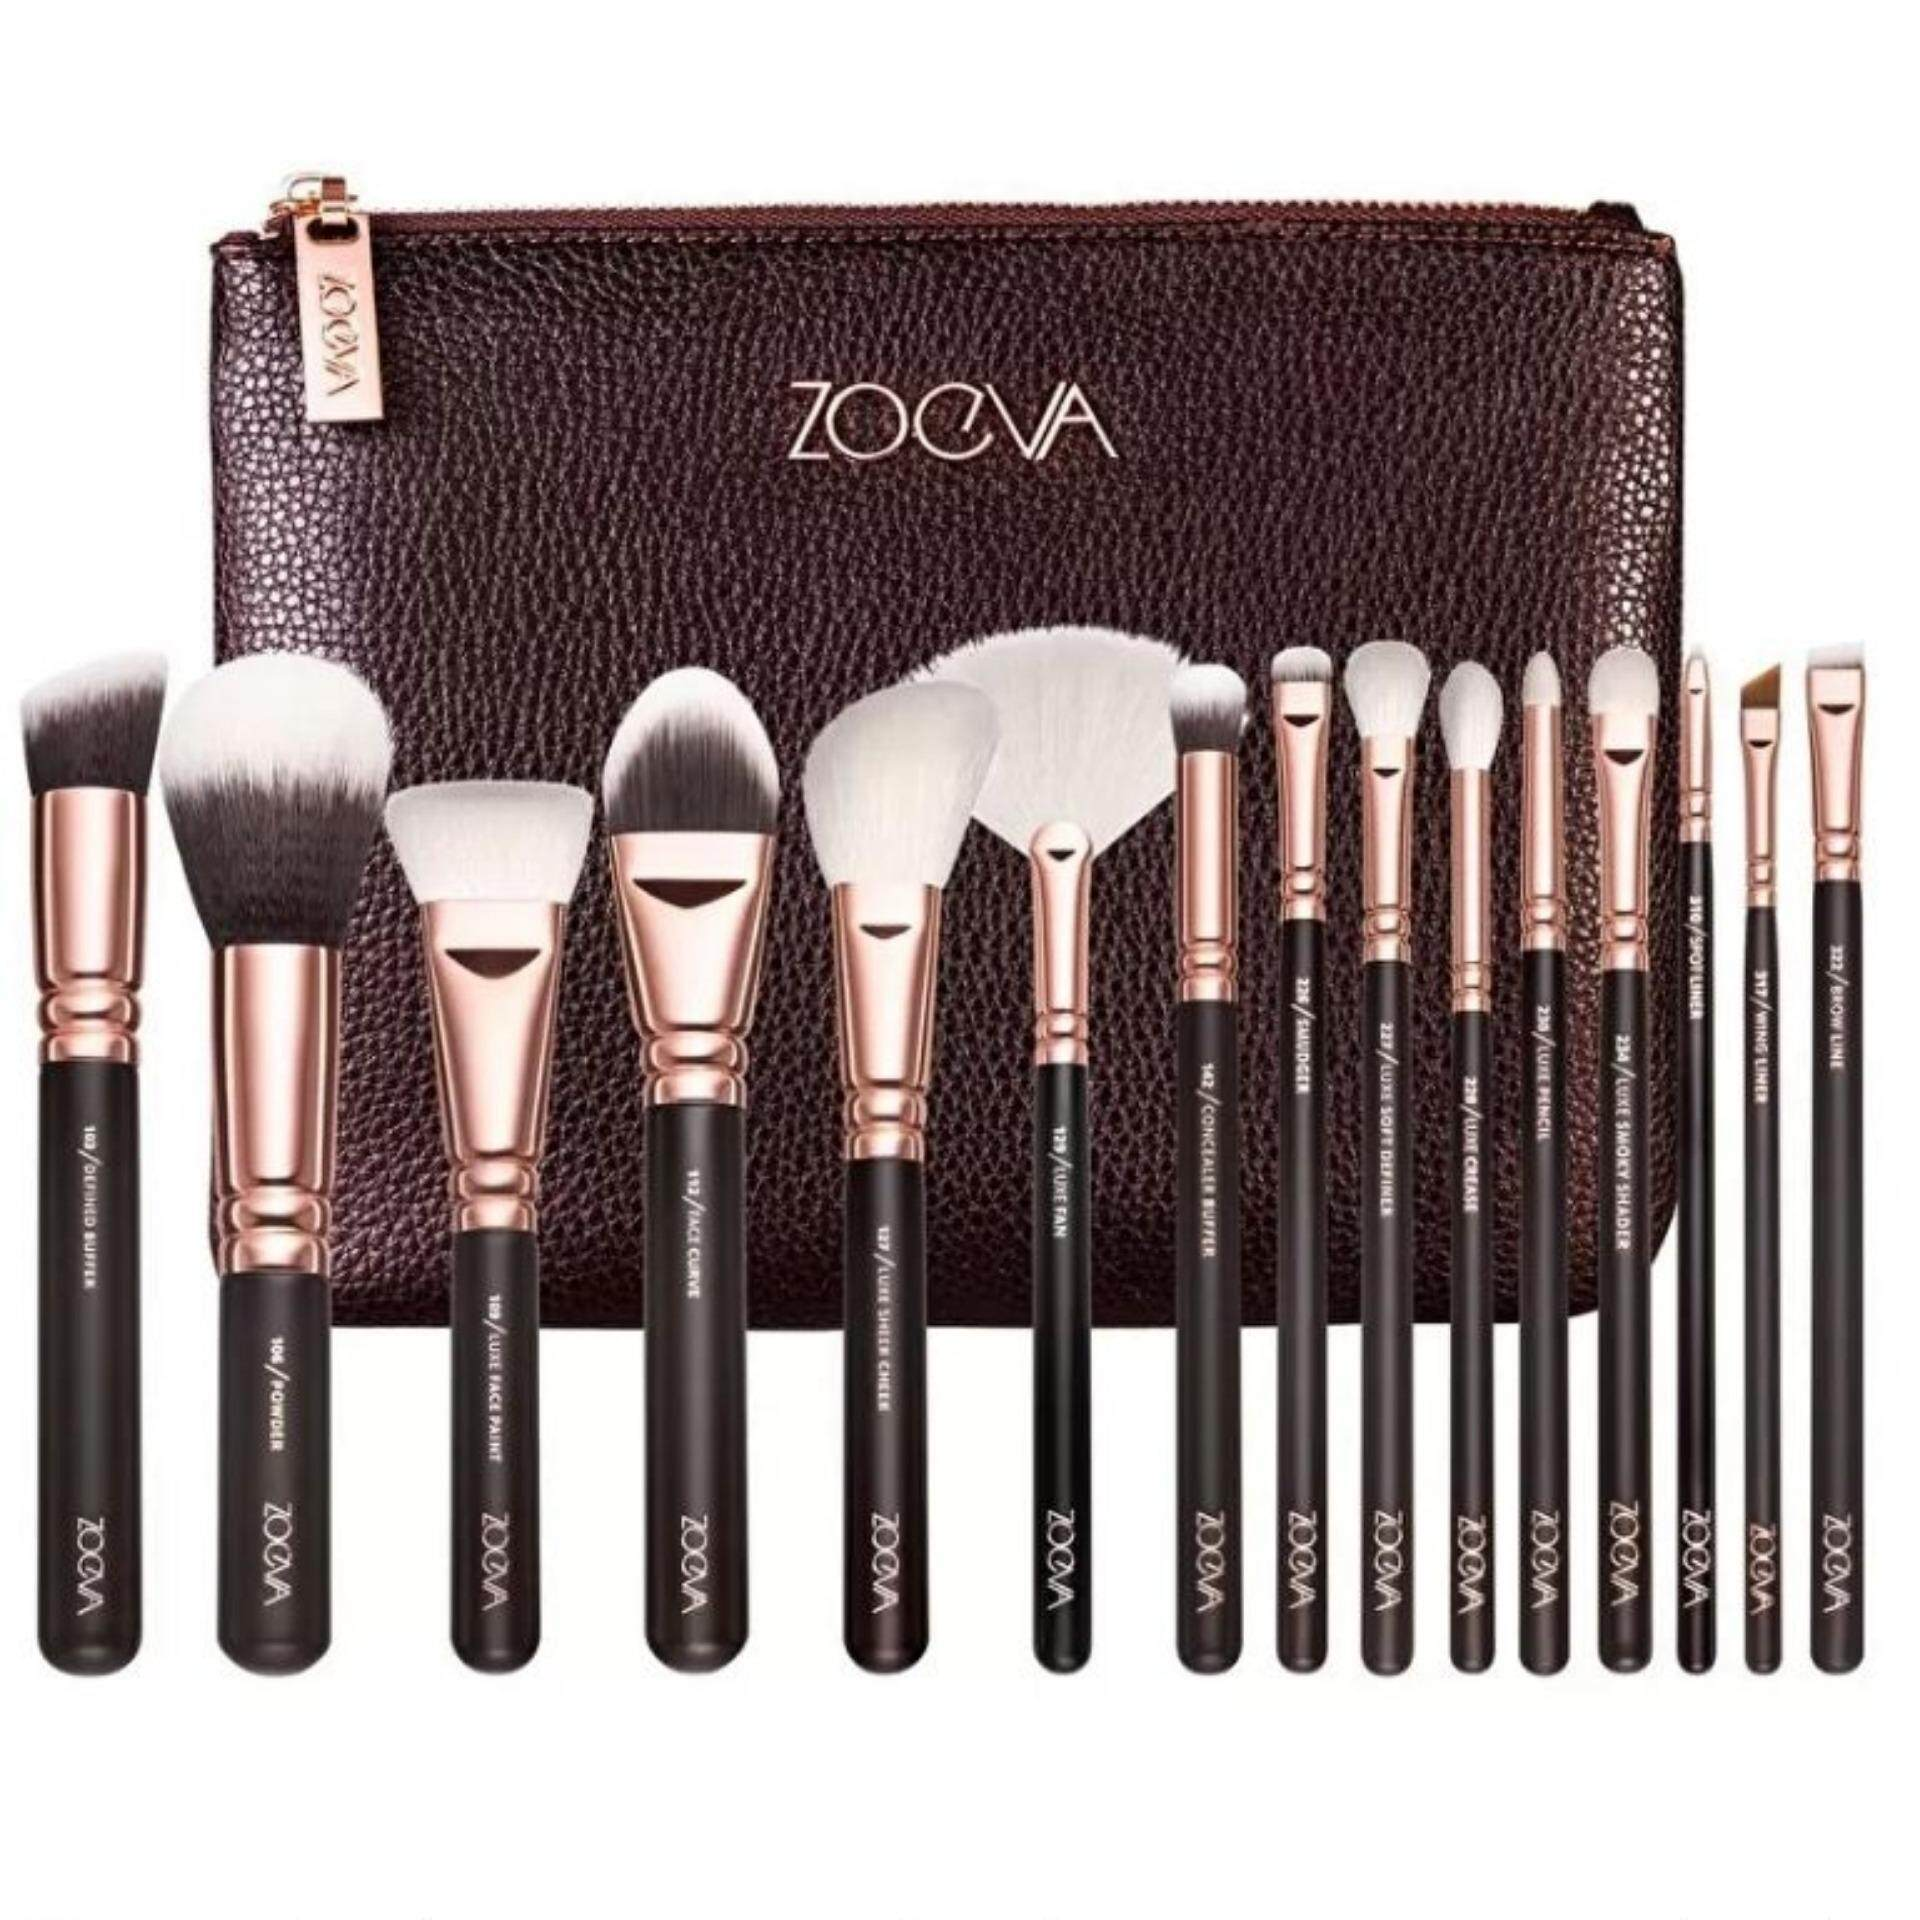 ZOEVA 15PCS Cosmetic Brushes Foundation Brush(น้ำตาล)1ชิ้น